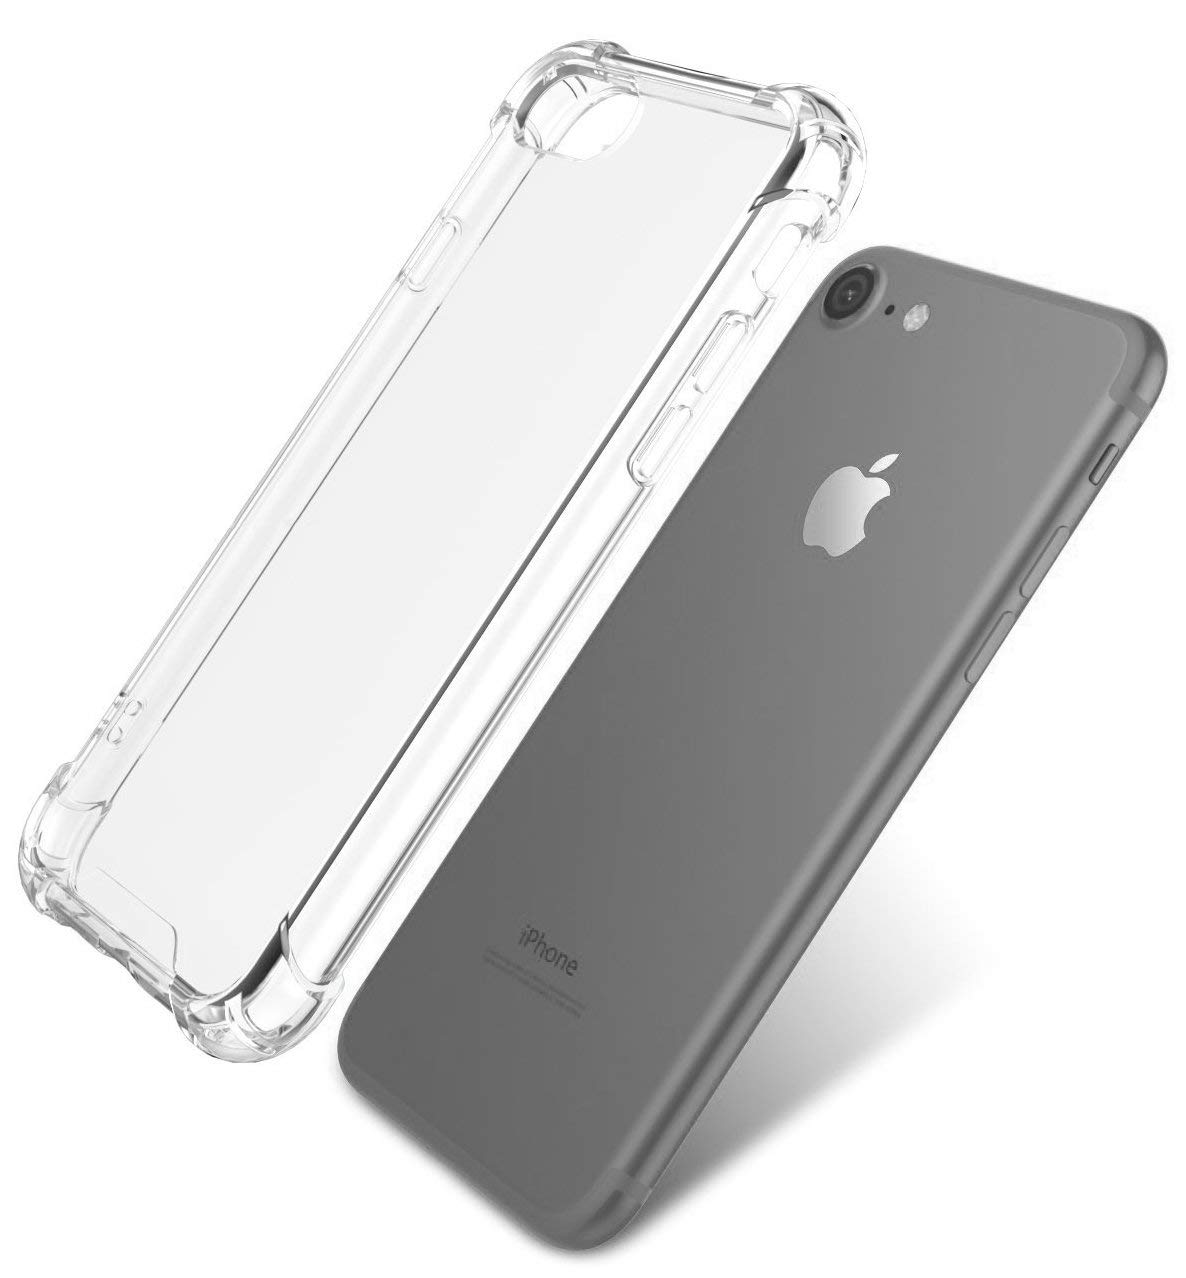 Clear, iPhone 7, iPhone 8 Case, Premium Scratch Resistant, Slim, Shock Proof, Air Cushion, Soft TPU Cover Case, Screen Protector Friendly, Quantum Case by AndsonGear